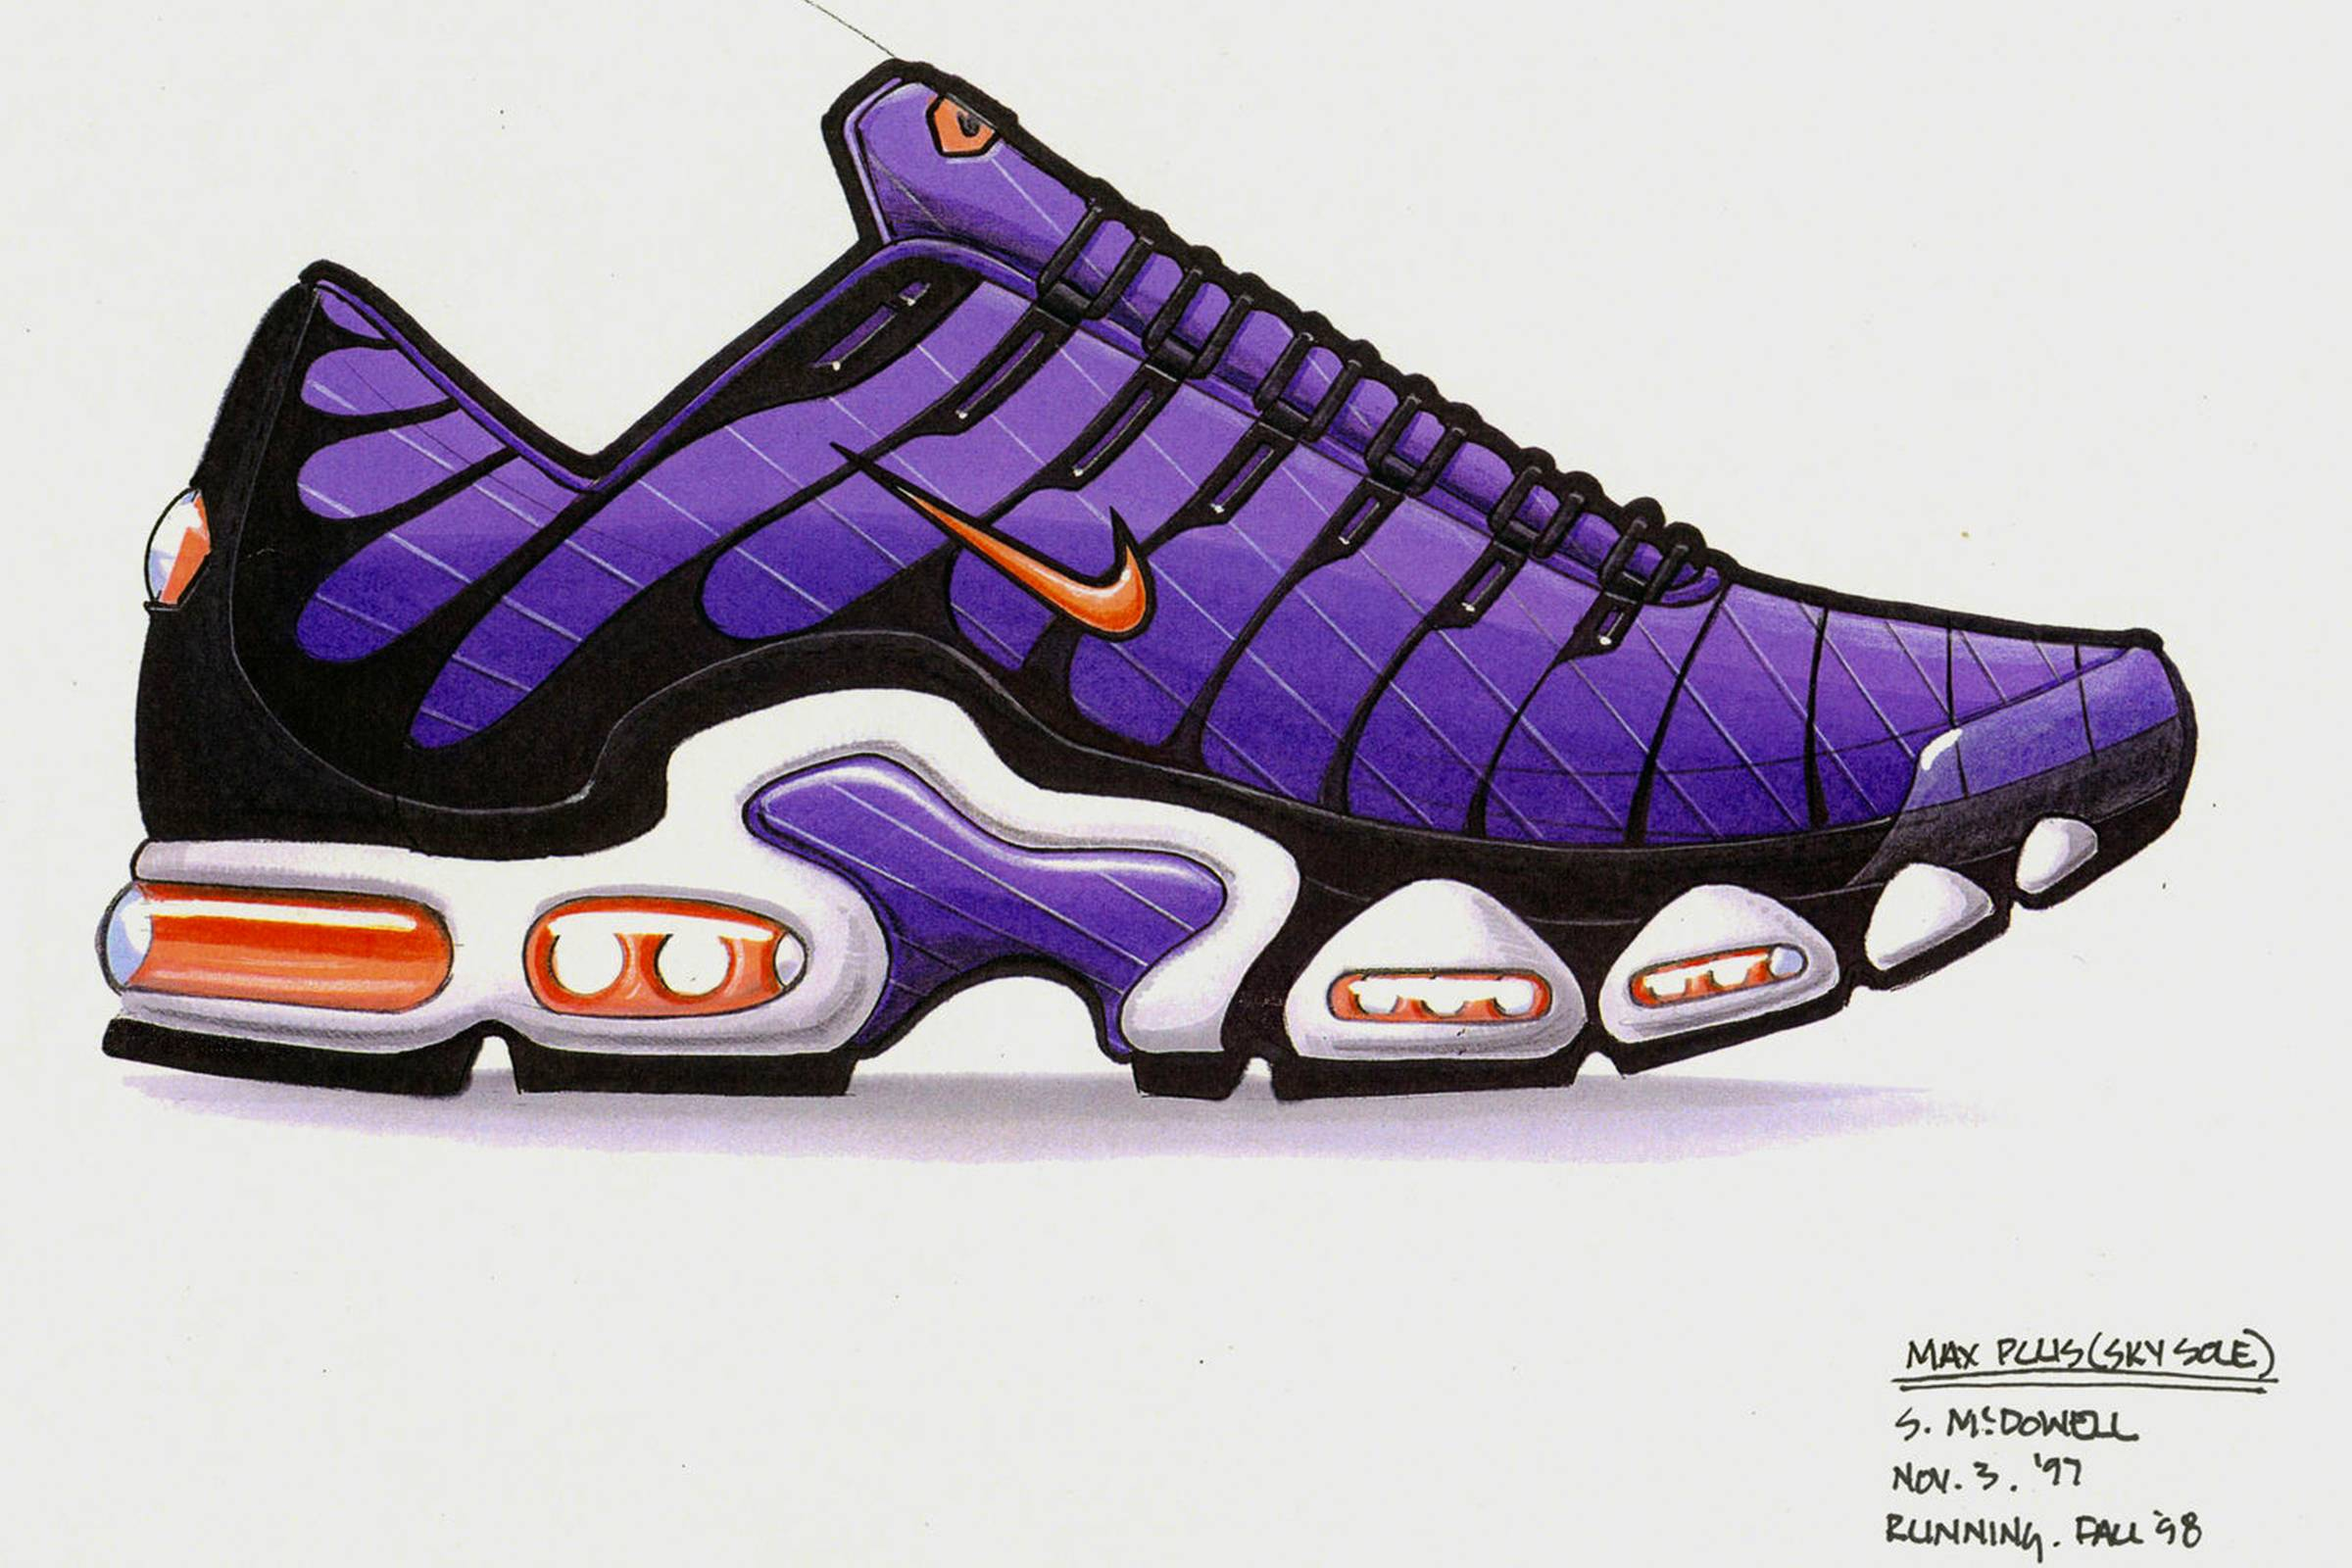 a449a59621fe Tuned Up  A History of the Air Max Plus - Air Max Plus History